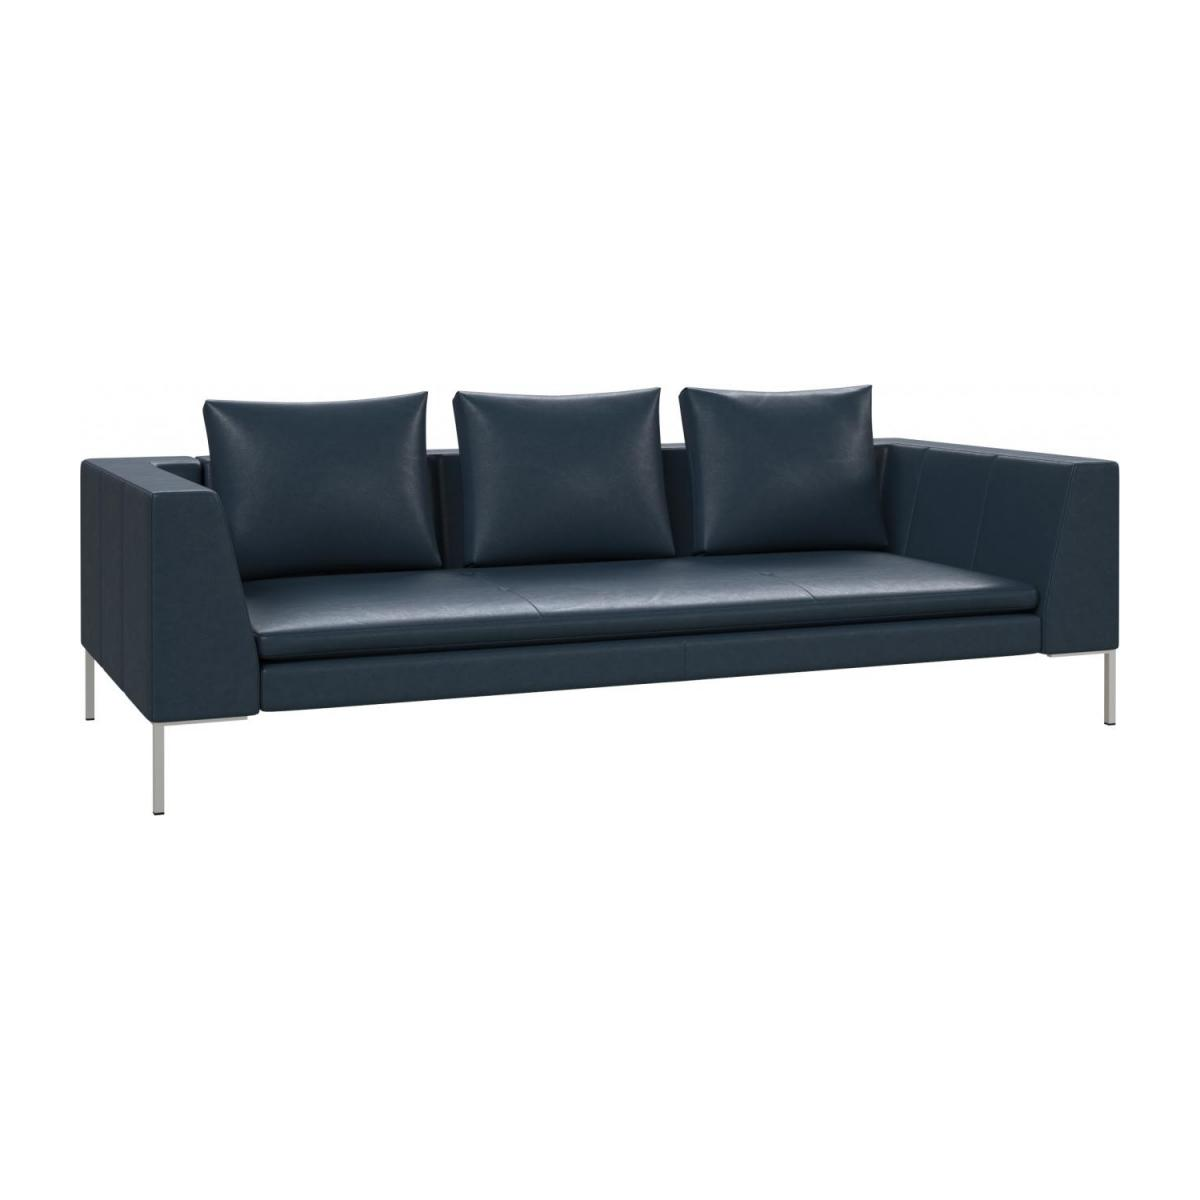 3-Sitzer Sofa aus Anilinleder Vintage Leather denim blue